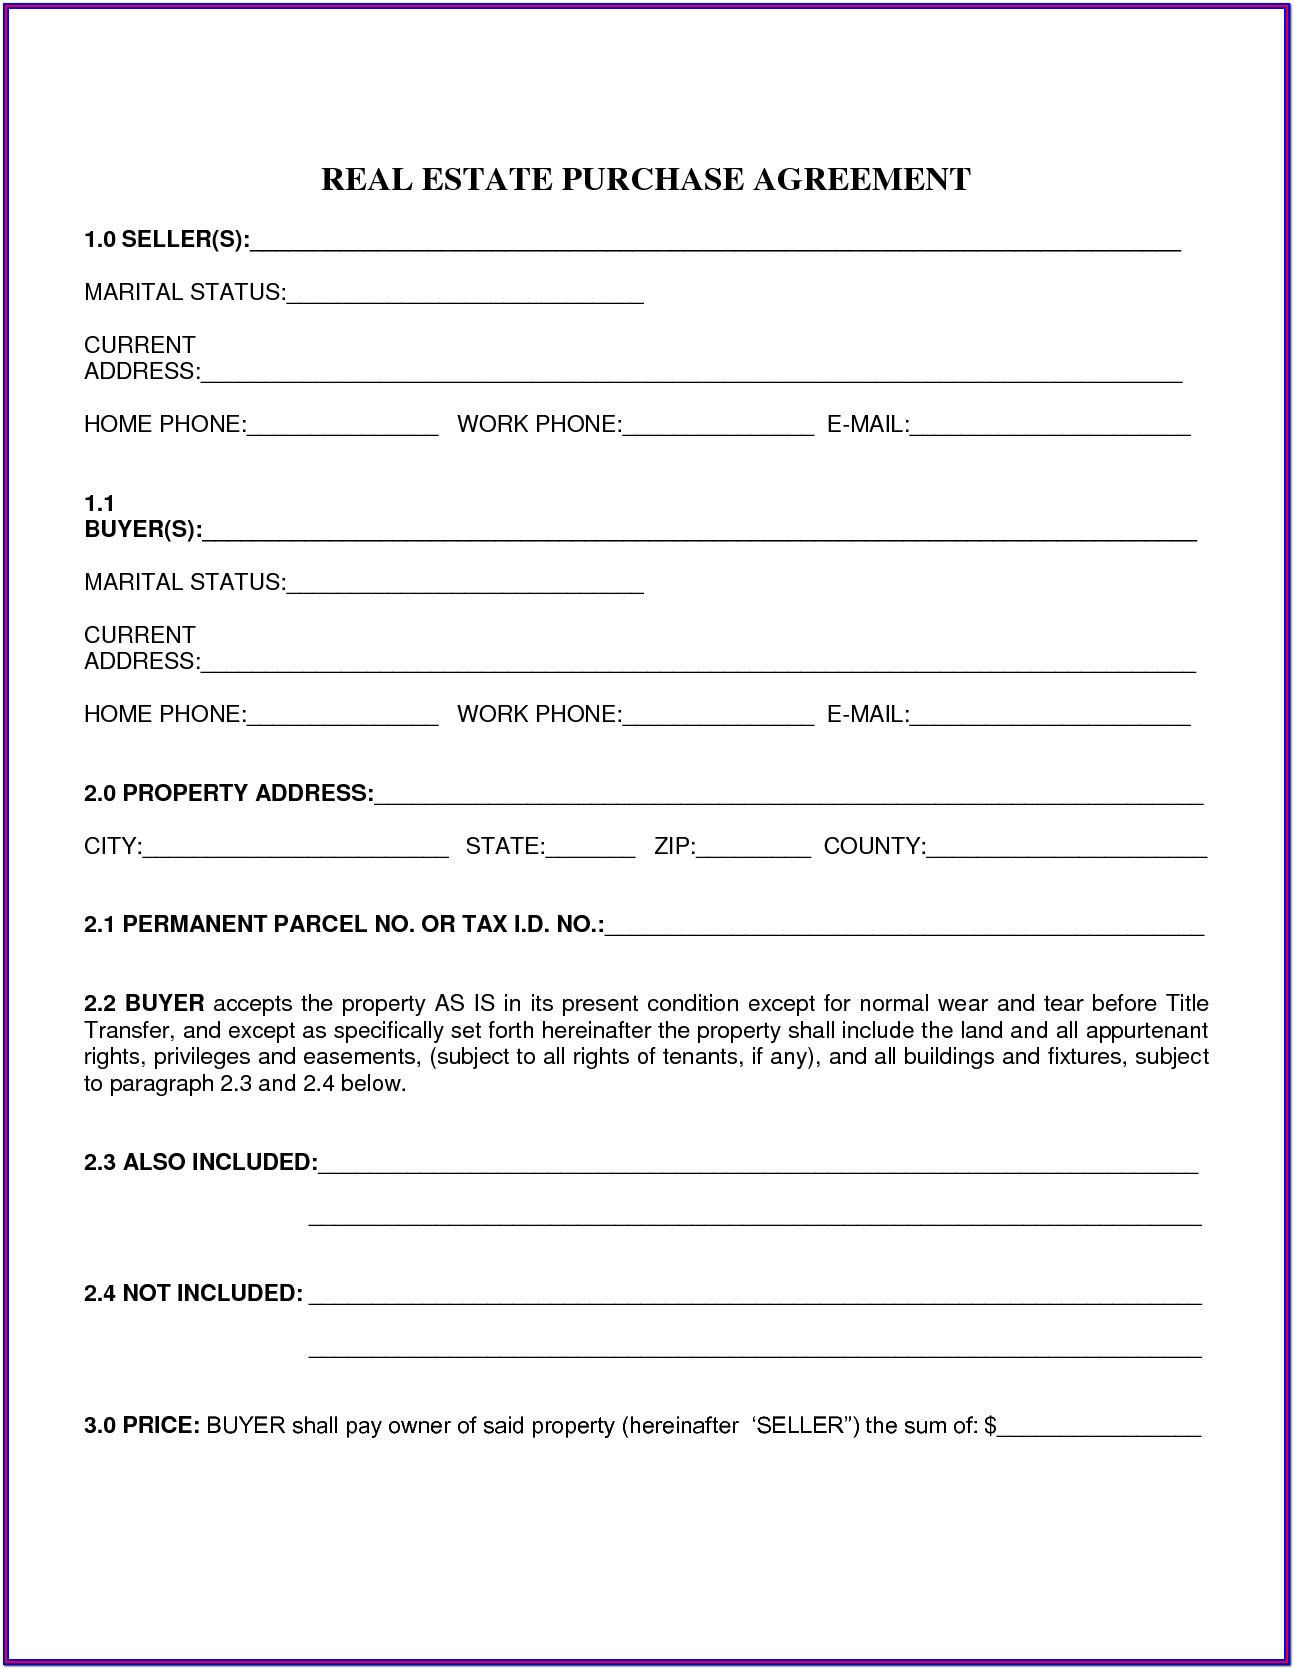 Ohio Real Estate Purchase Contract Form